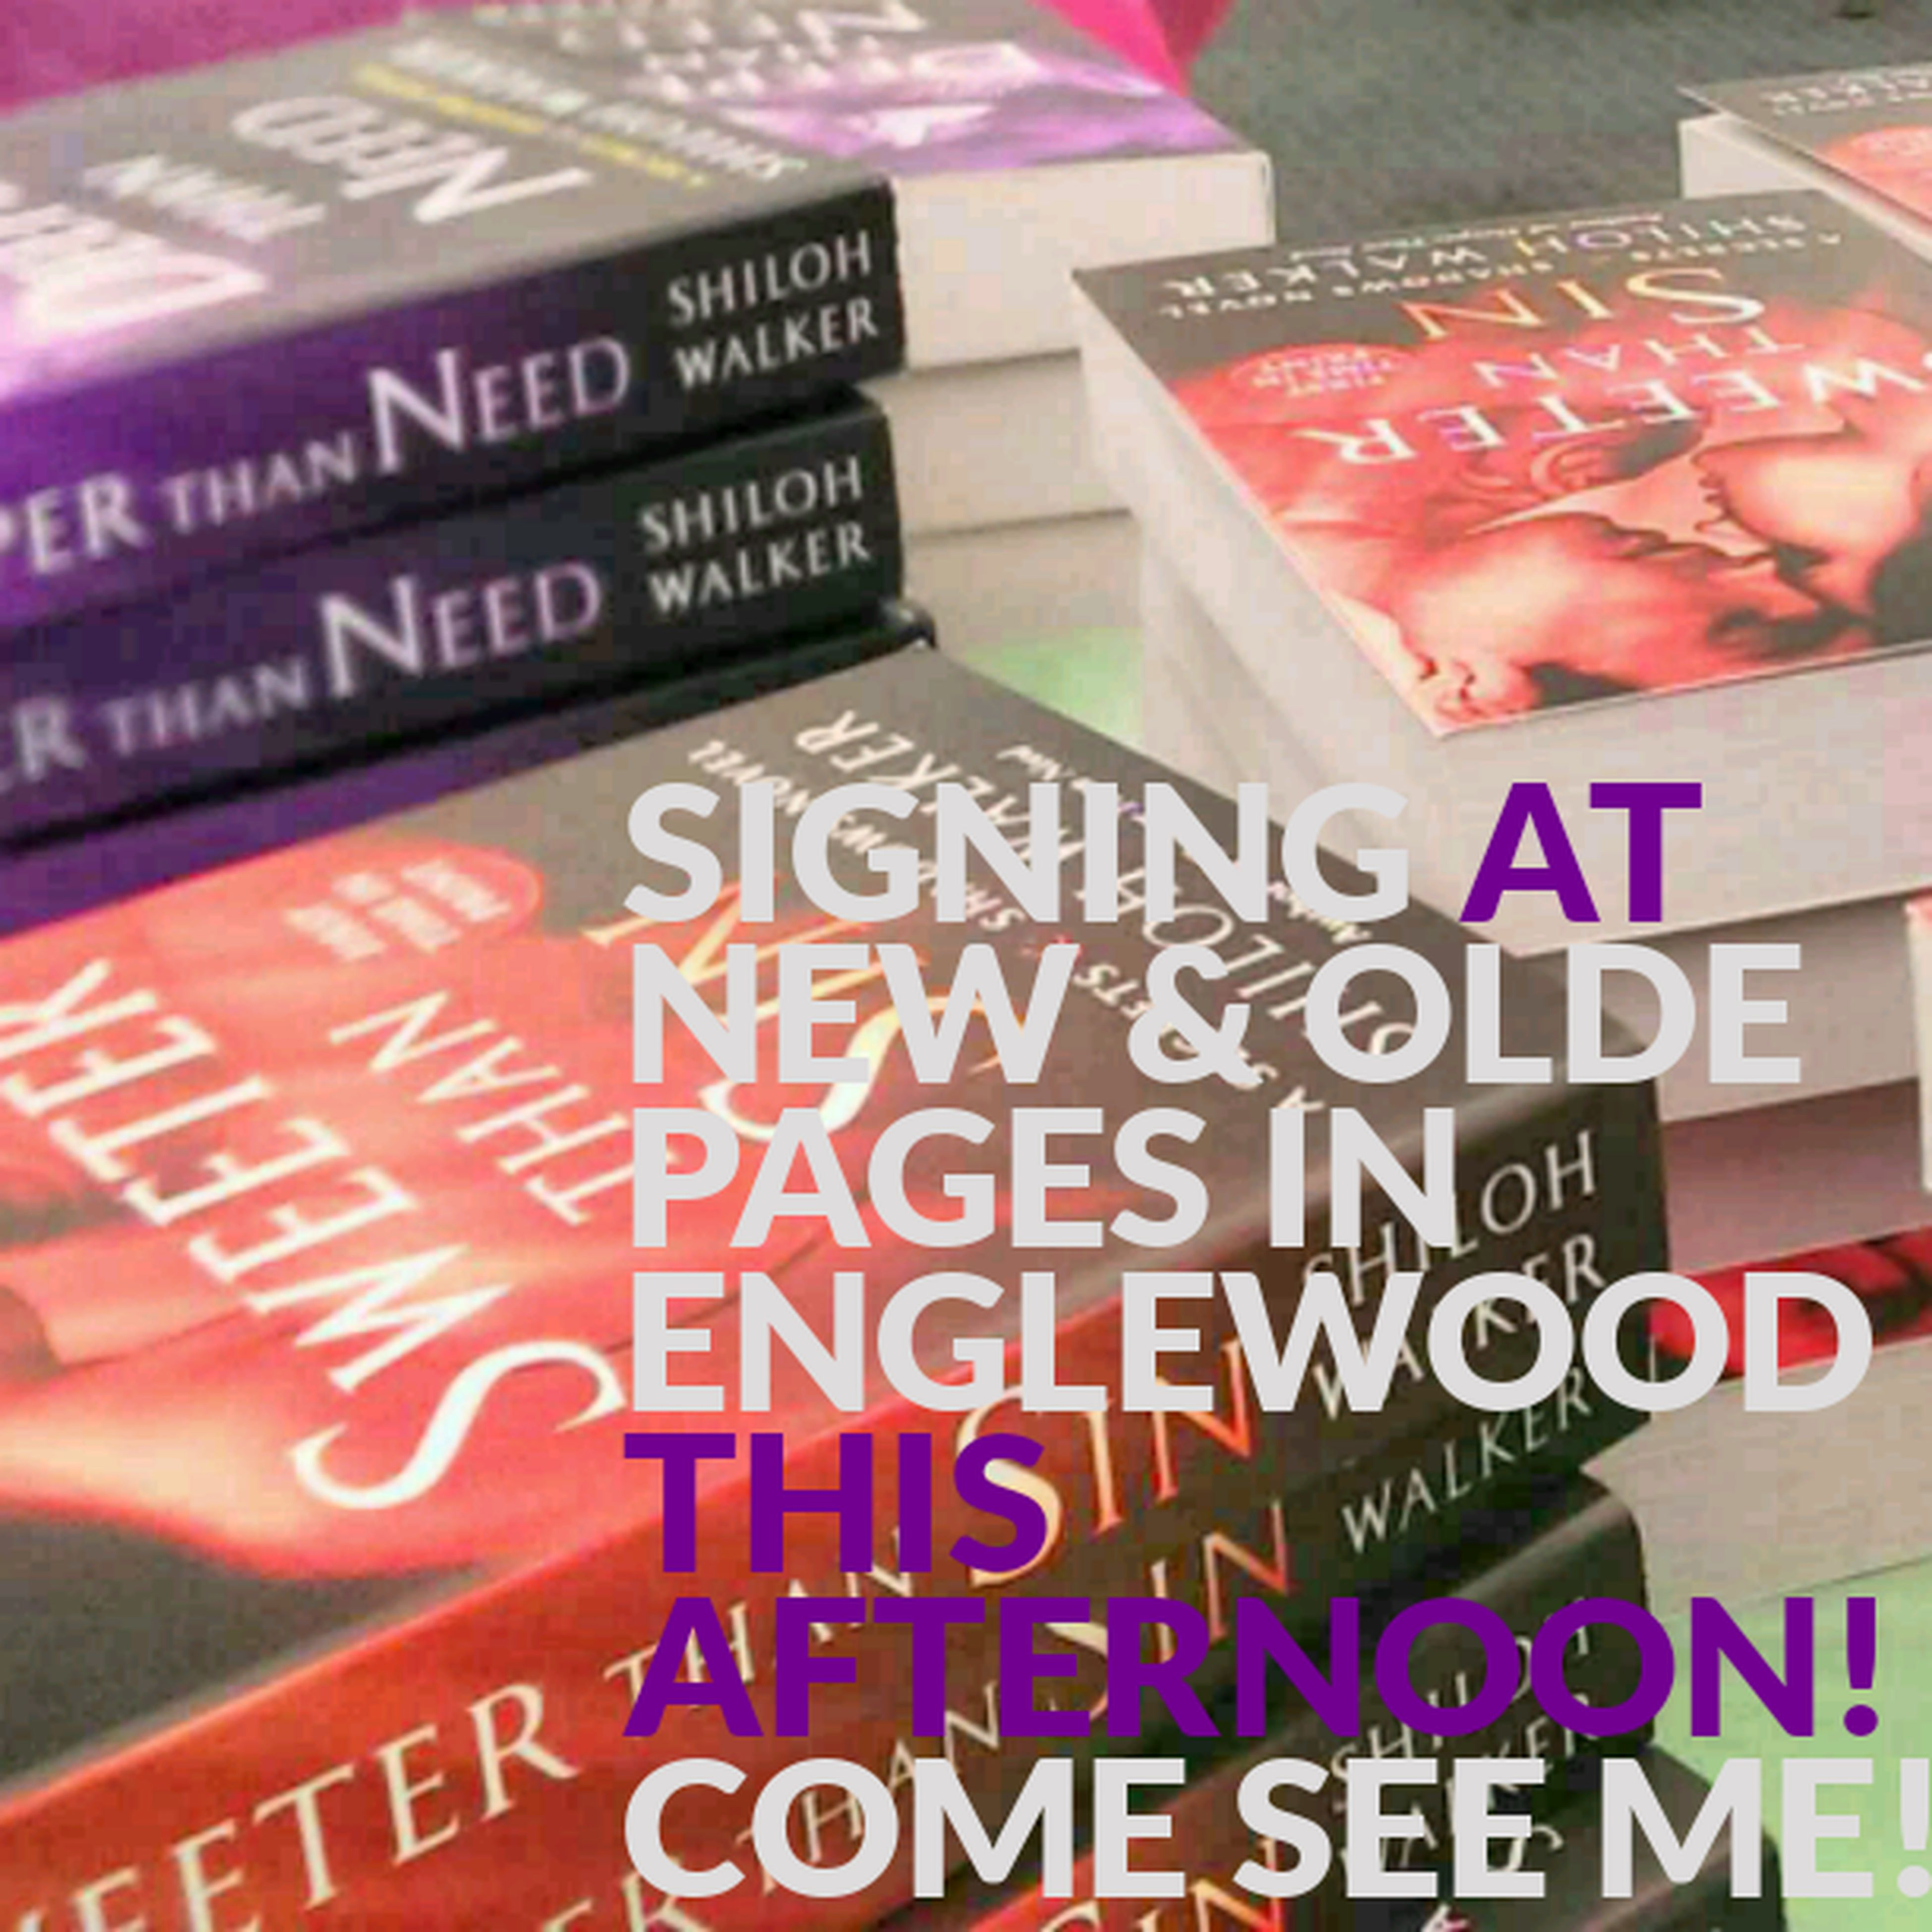 signing at New & Olde Pages in Englewood this afternoon! come see me!